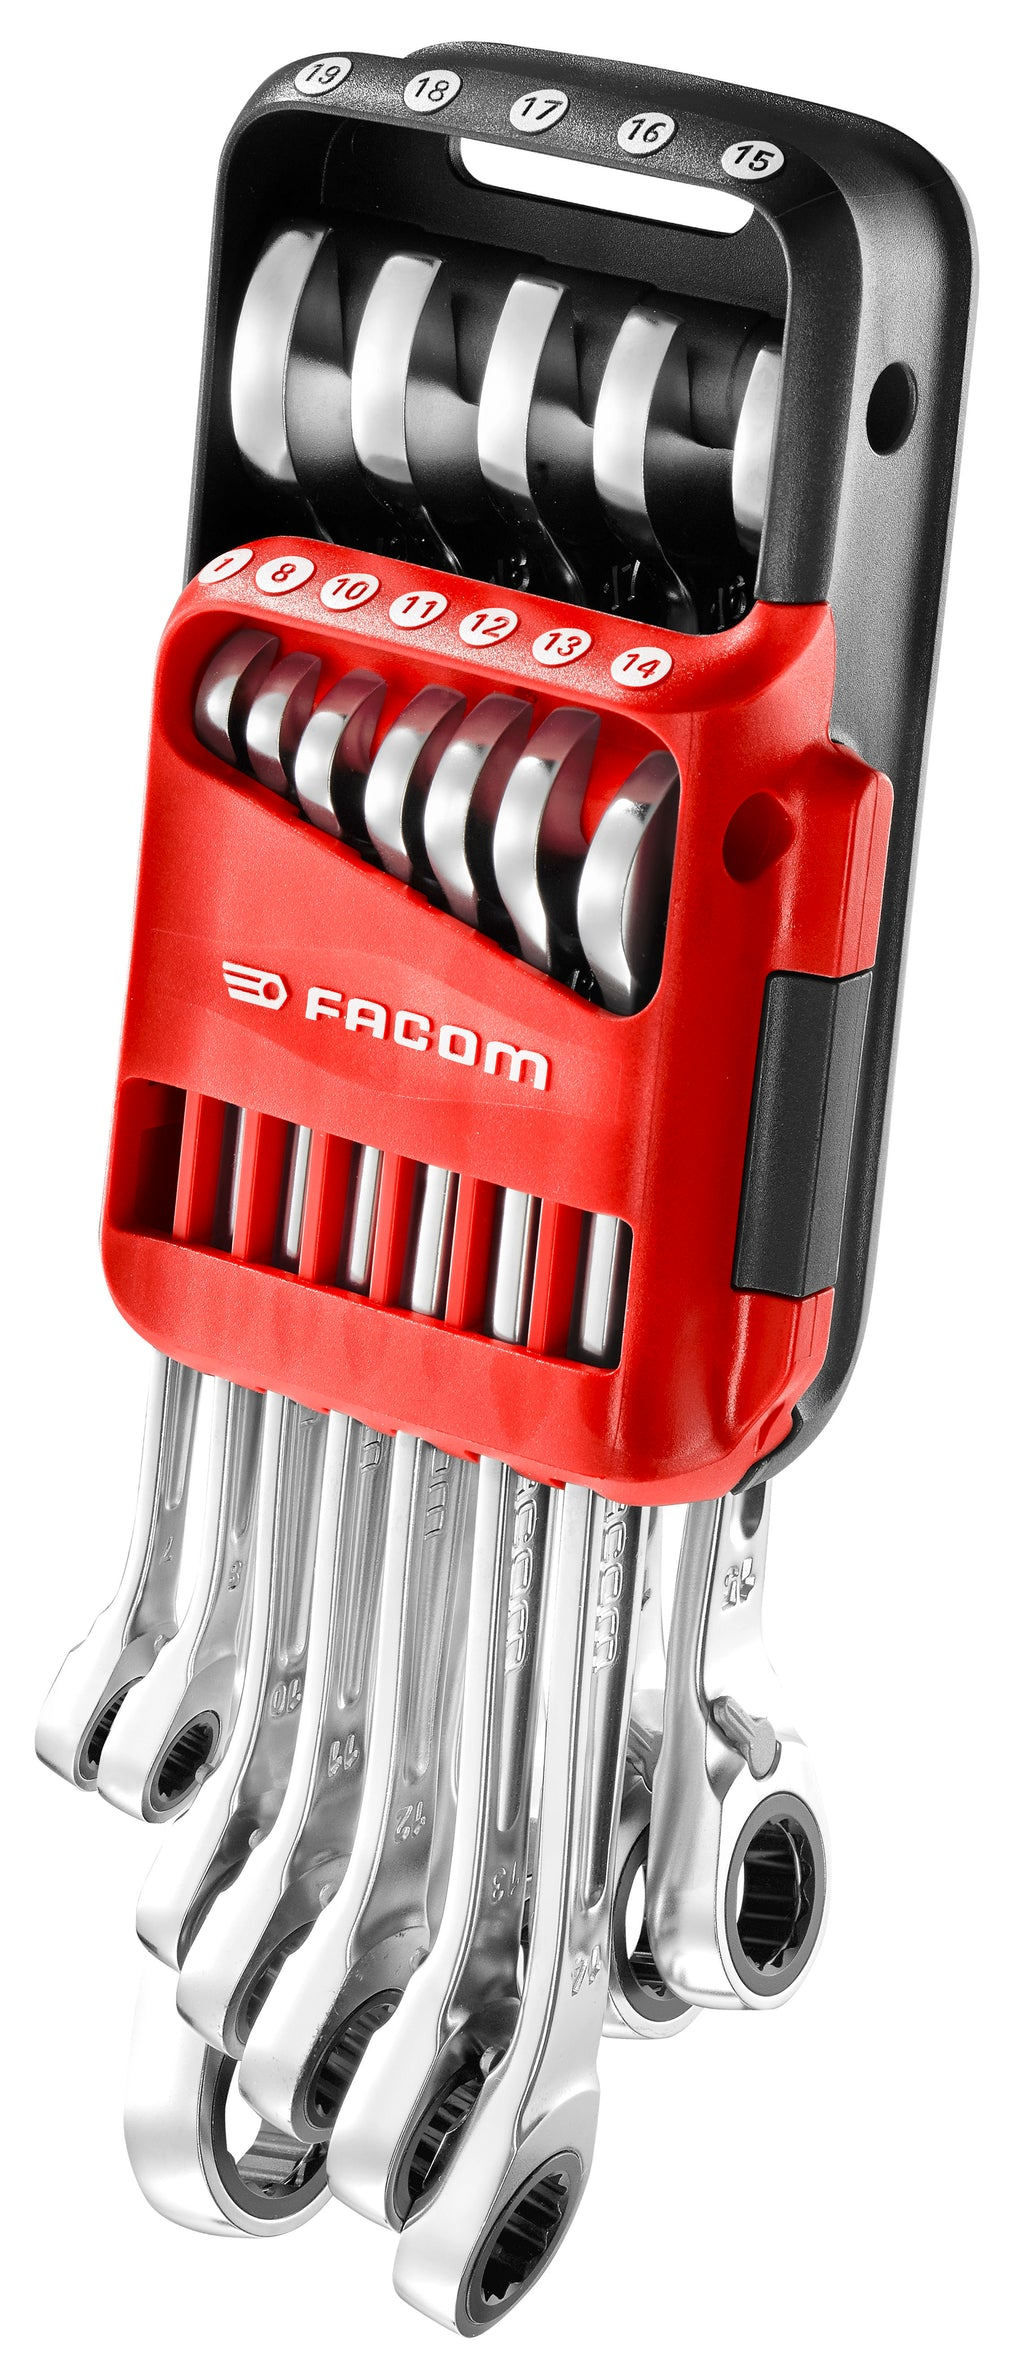 FACOM Pocket Set of 12 Spanners